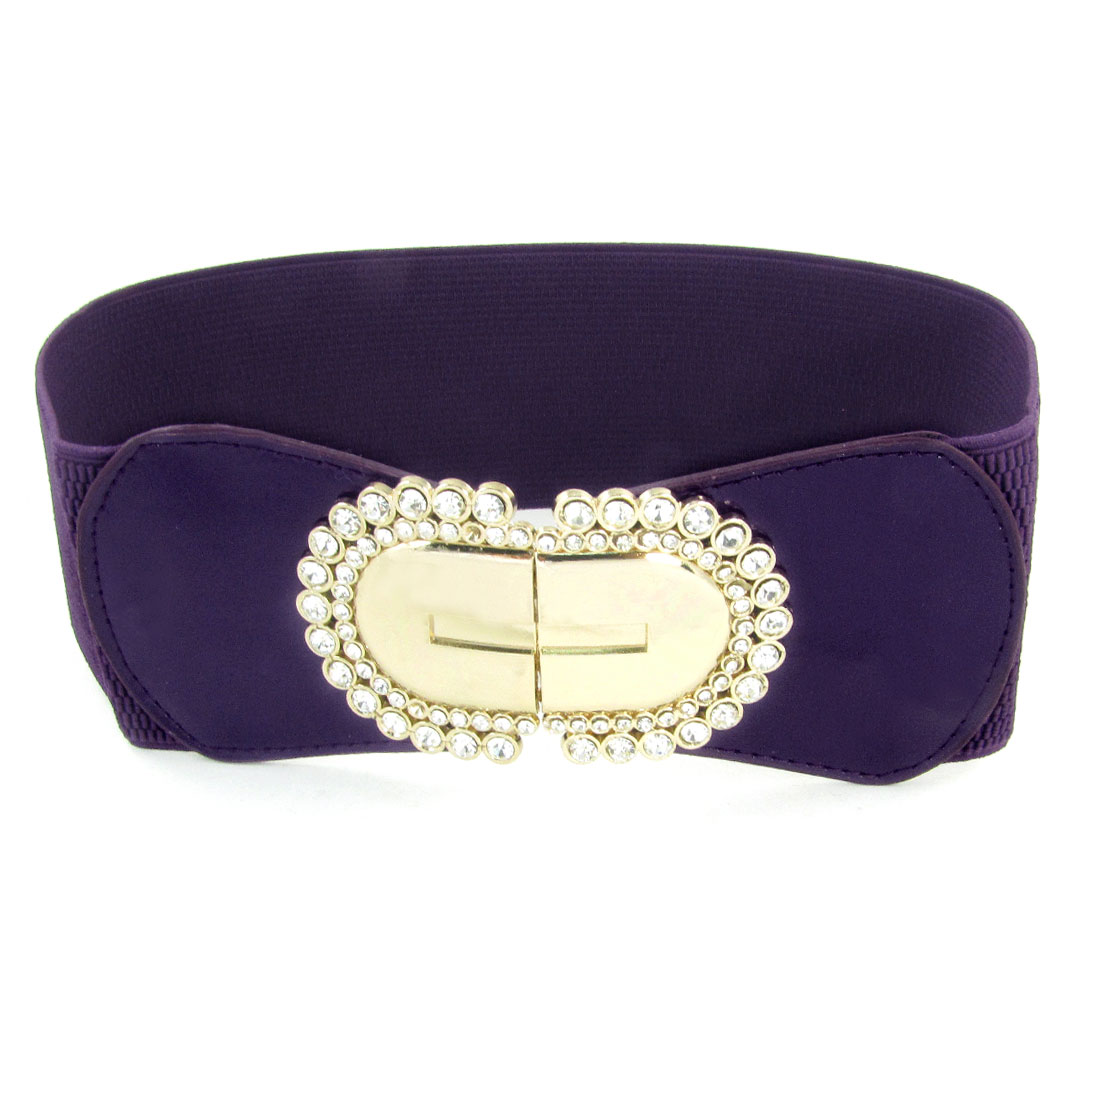 Glitter Rhinestones Accent Metal Interlock Buckle Dark Purple Spandex Cinch Belt